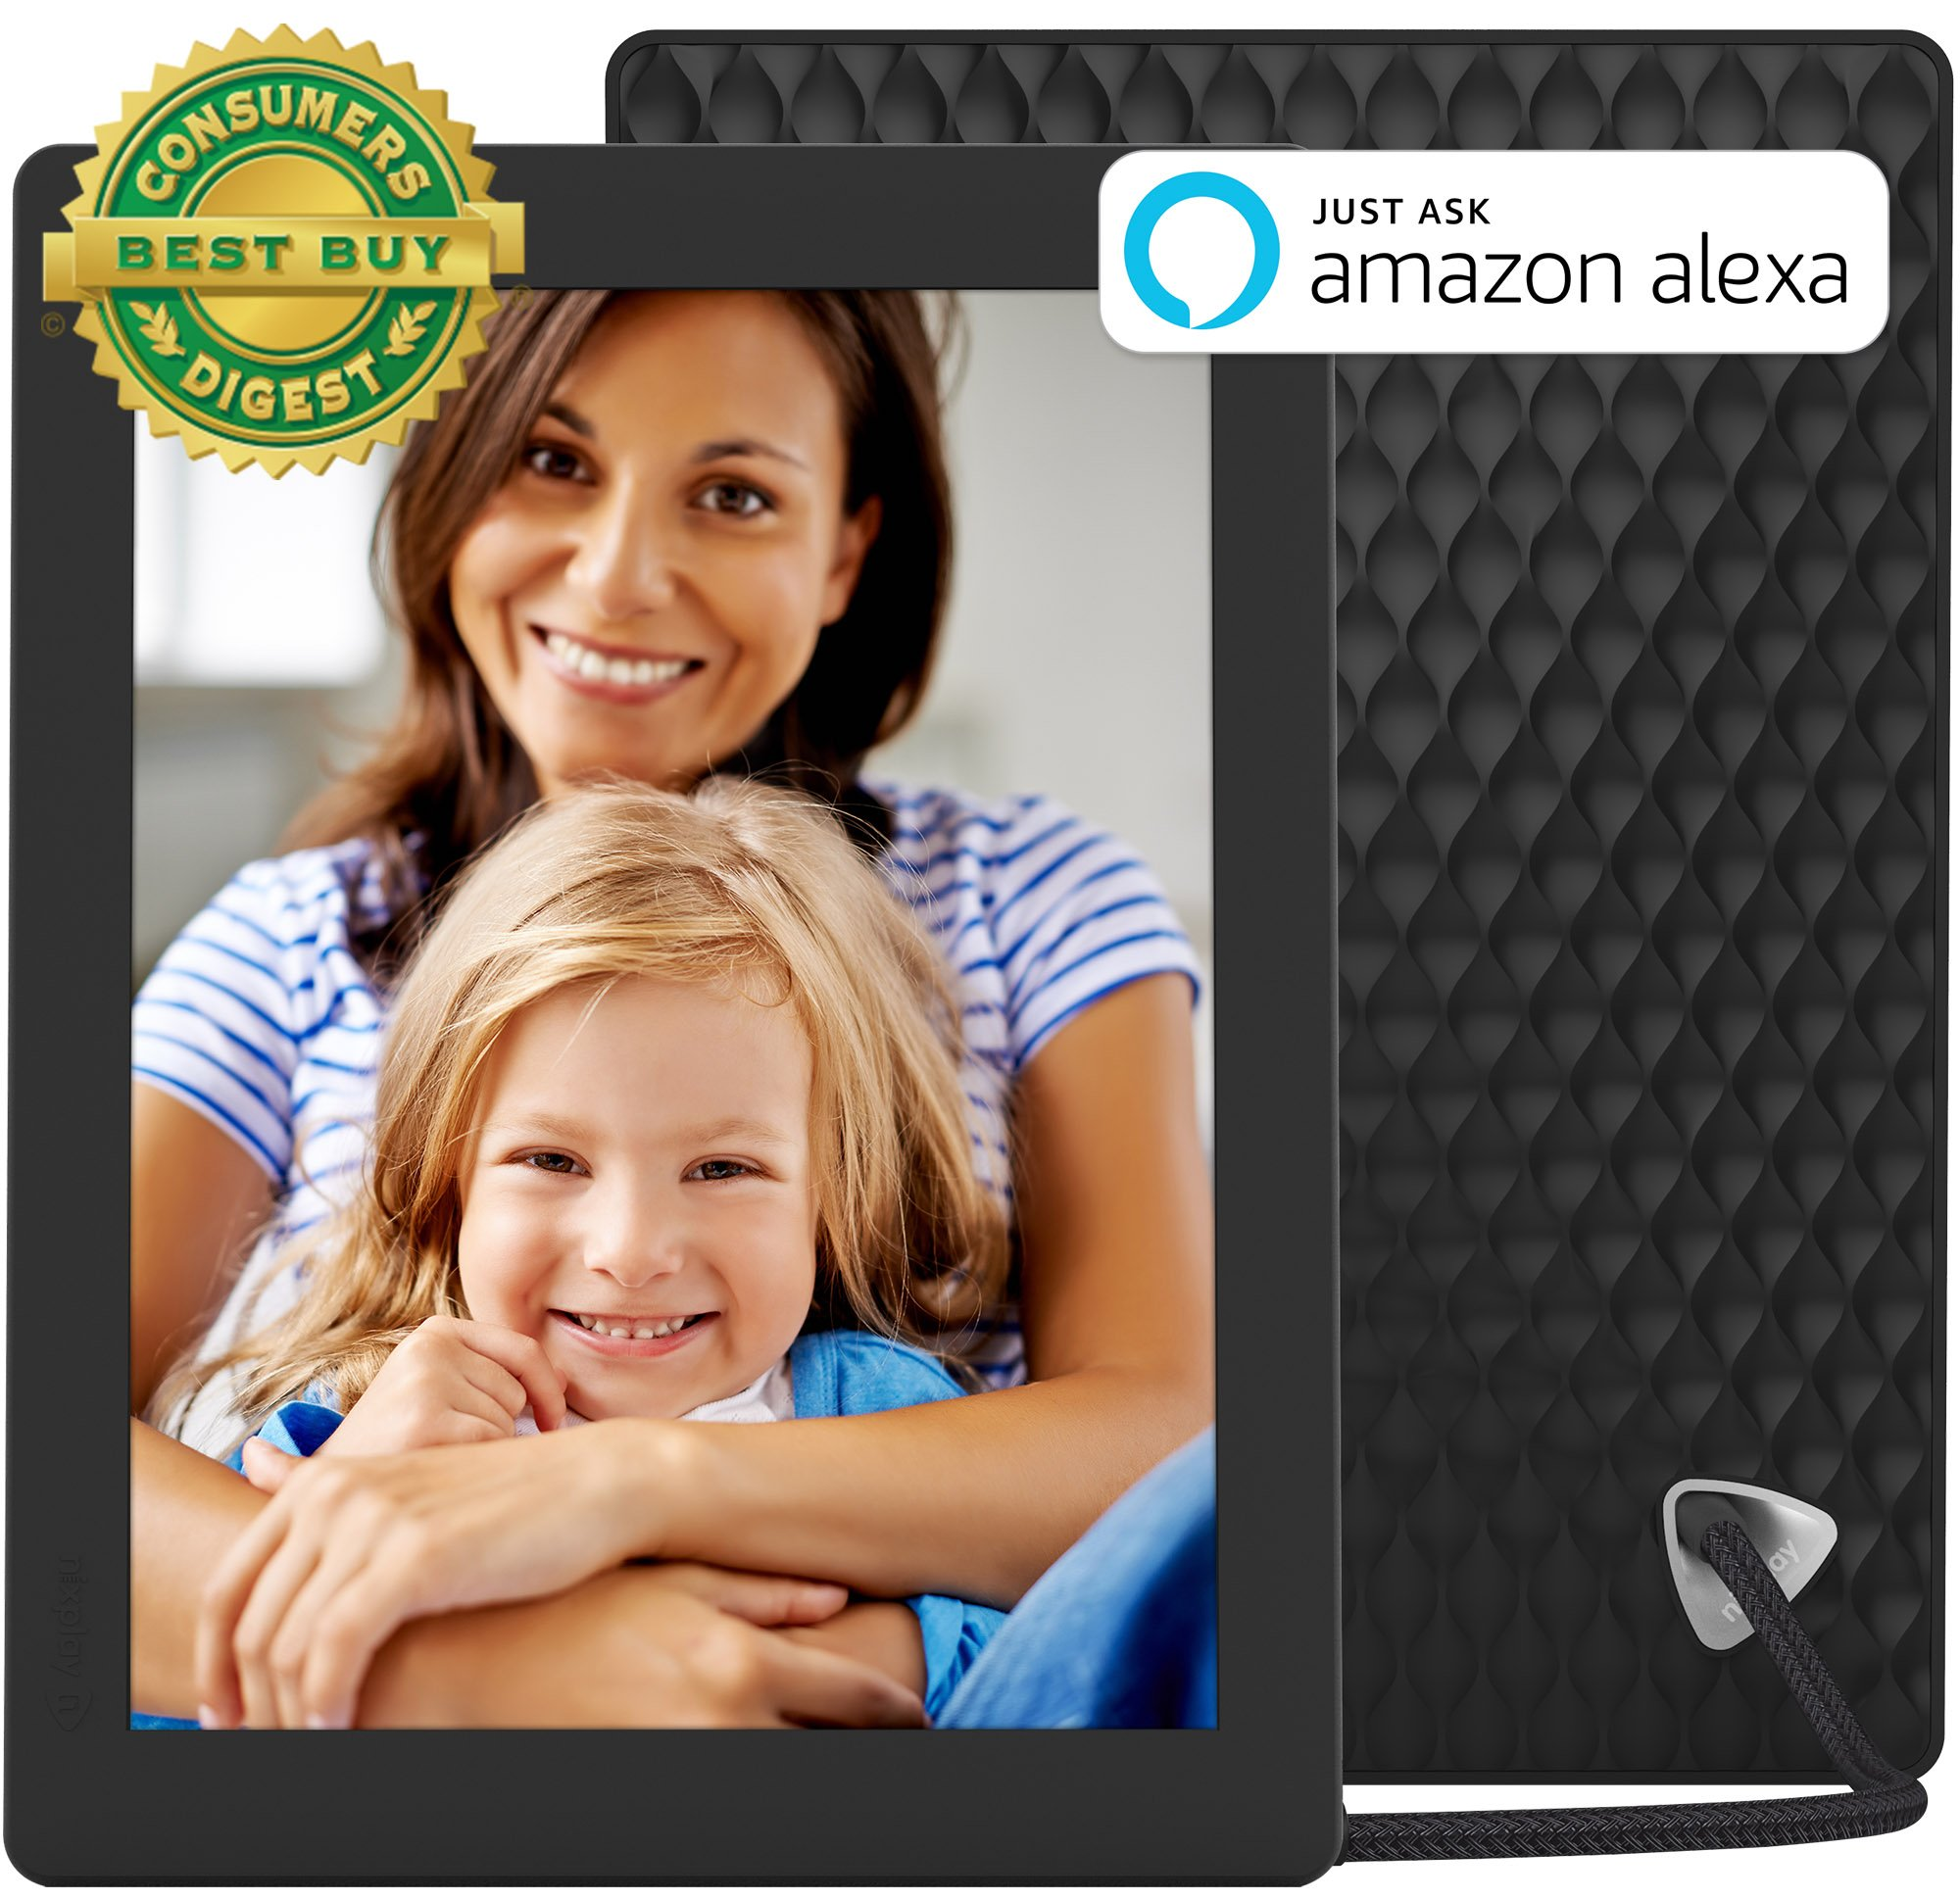 Nixplay Seed 10 Inch WiFi Cloud Digital Photo Frame with IPS Display, iPhone & Android App, Free 10GB Online Storage and Motion Sensor (Black) by nixplay (Image #1)